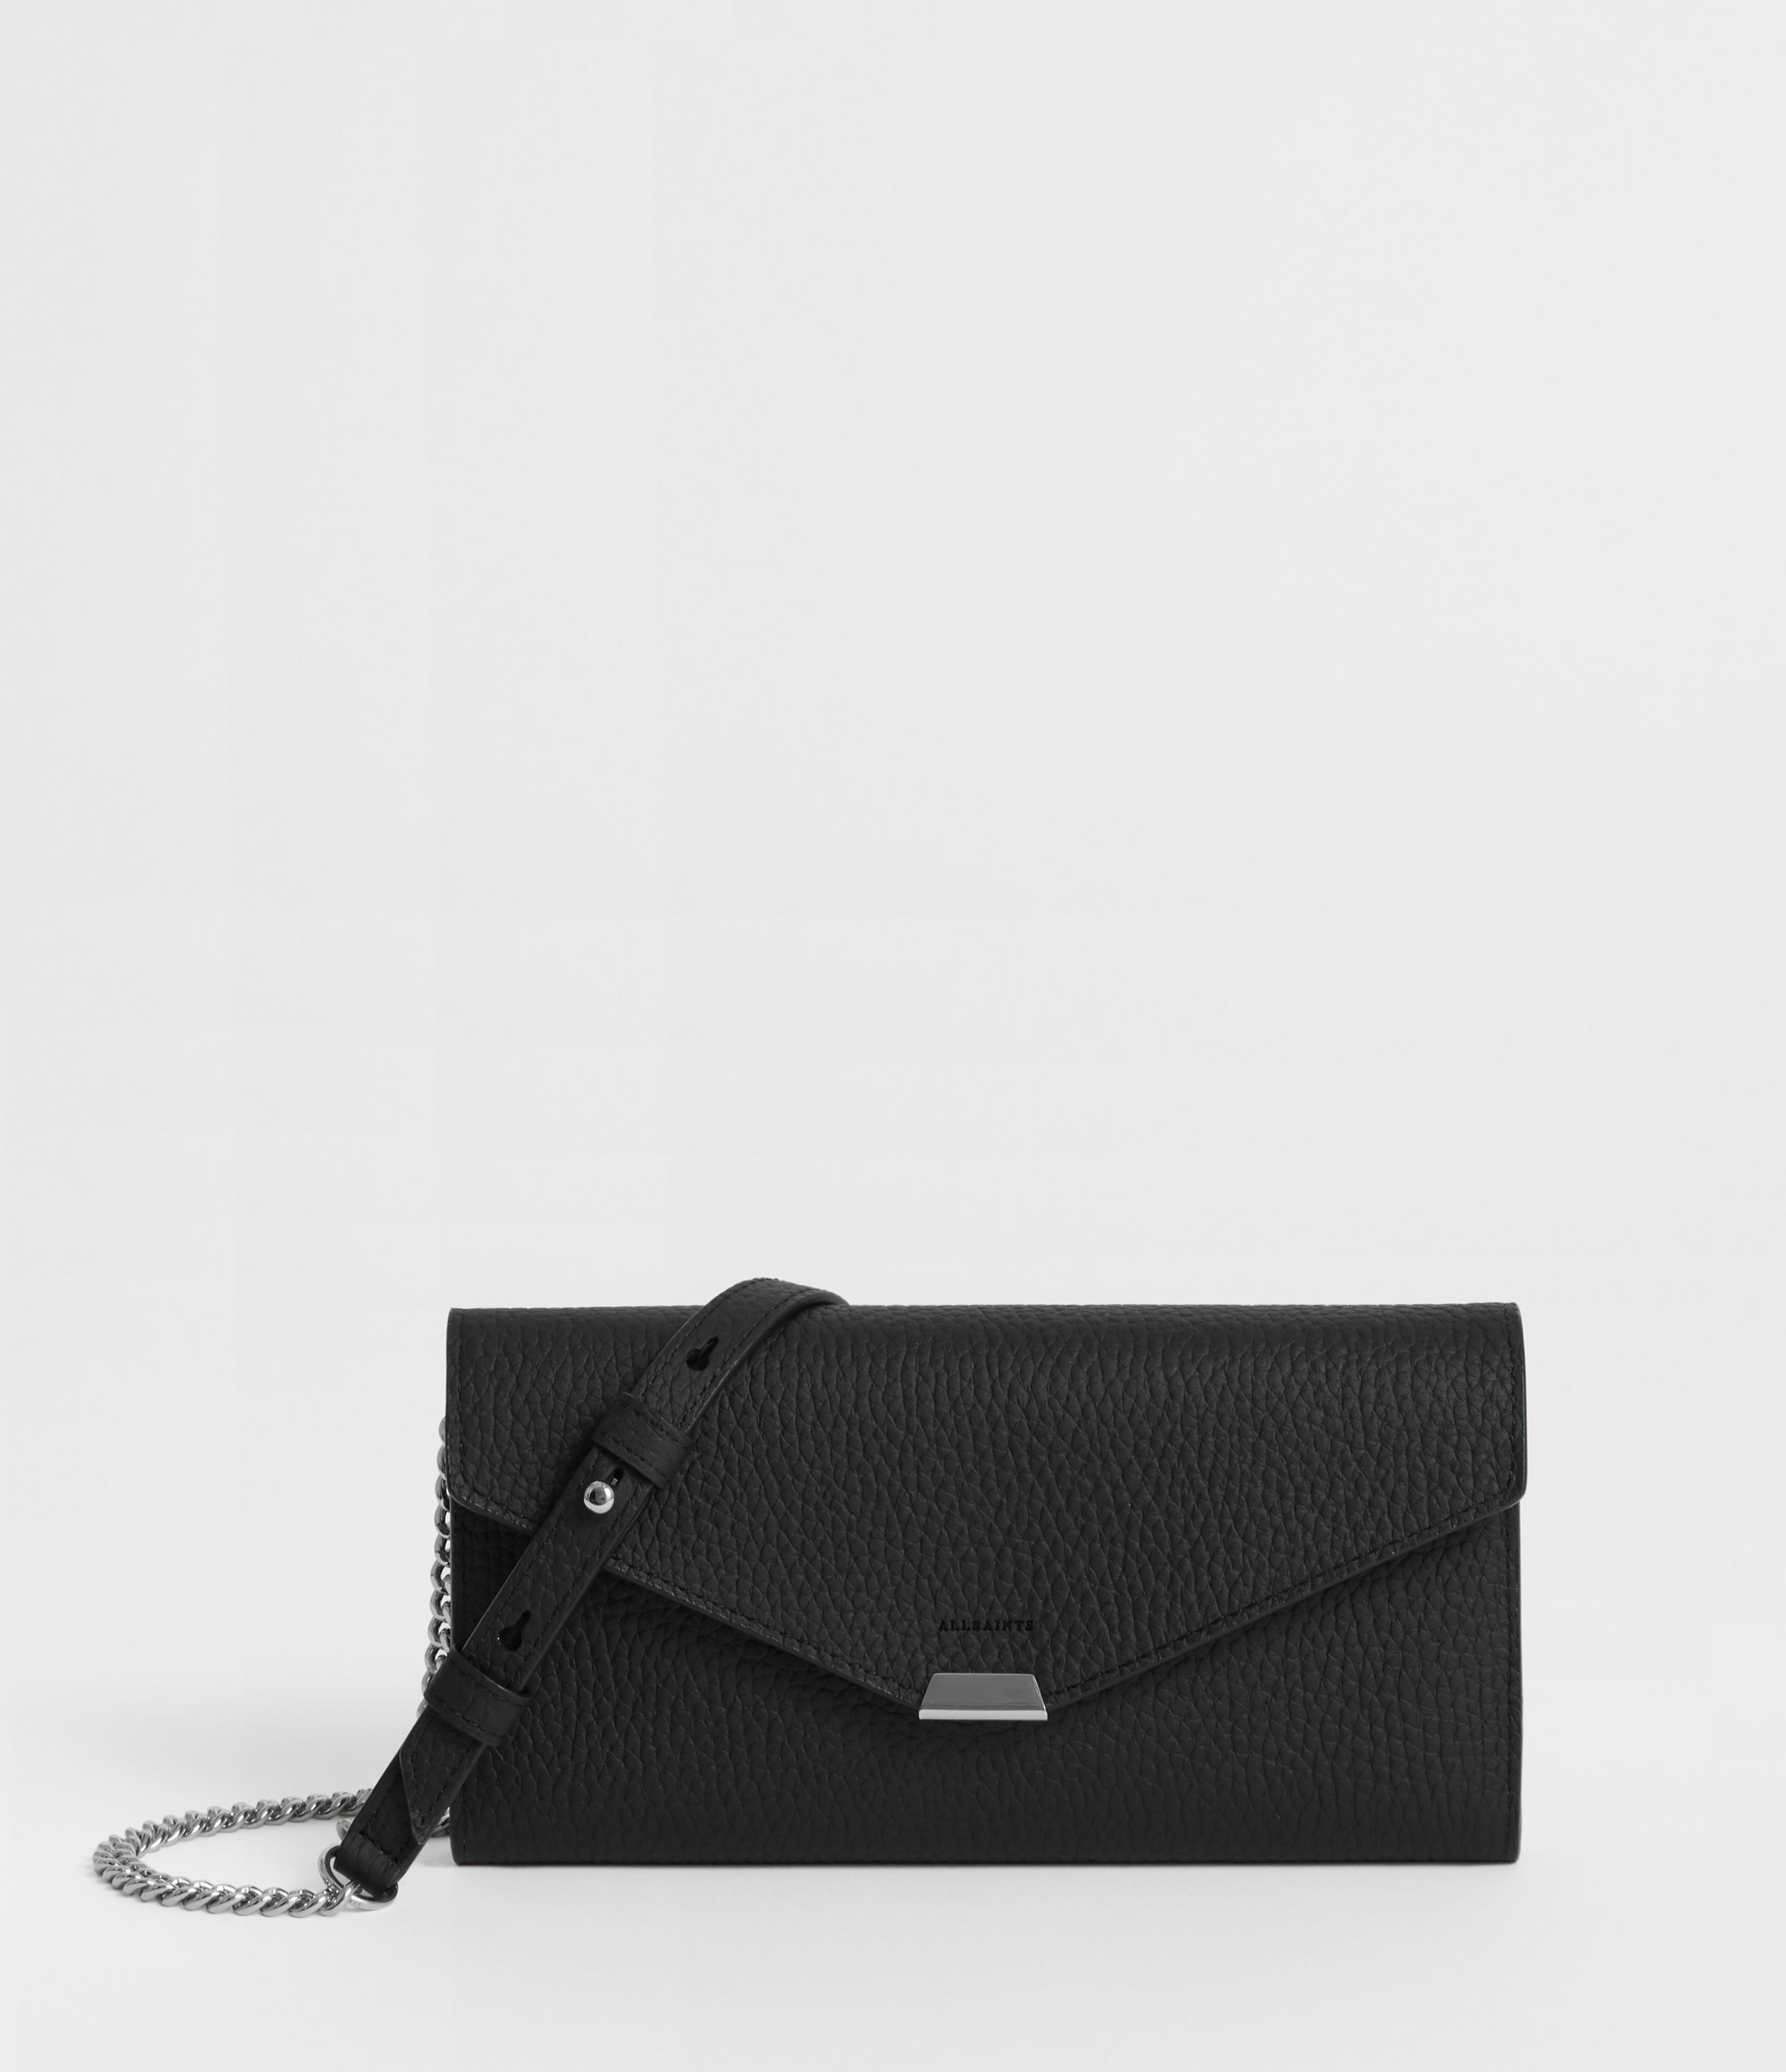 AllSaints Women's Leather Captain Chain Wallet, Black